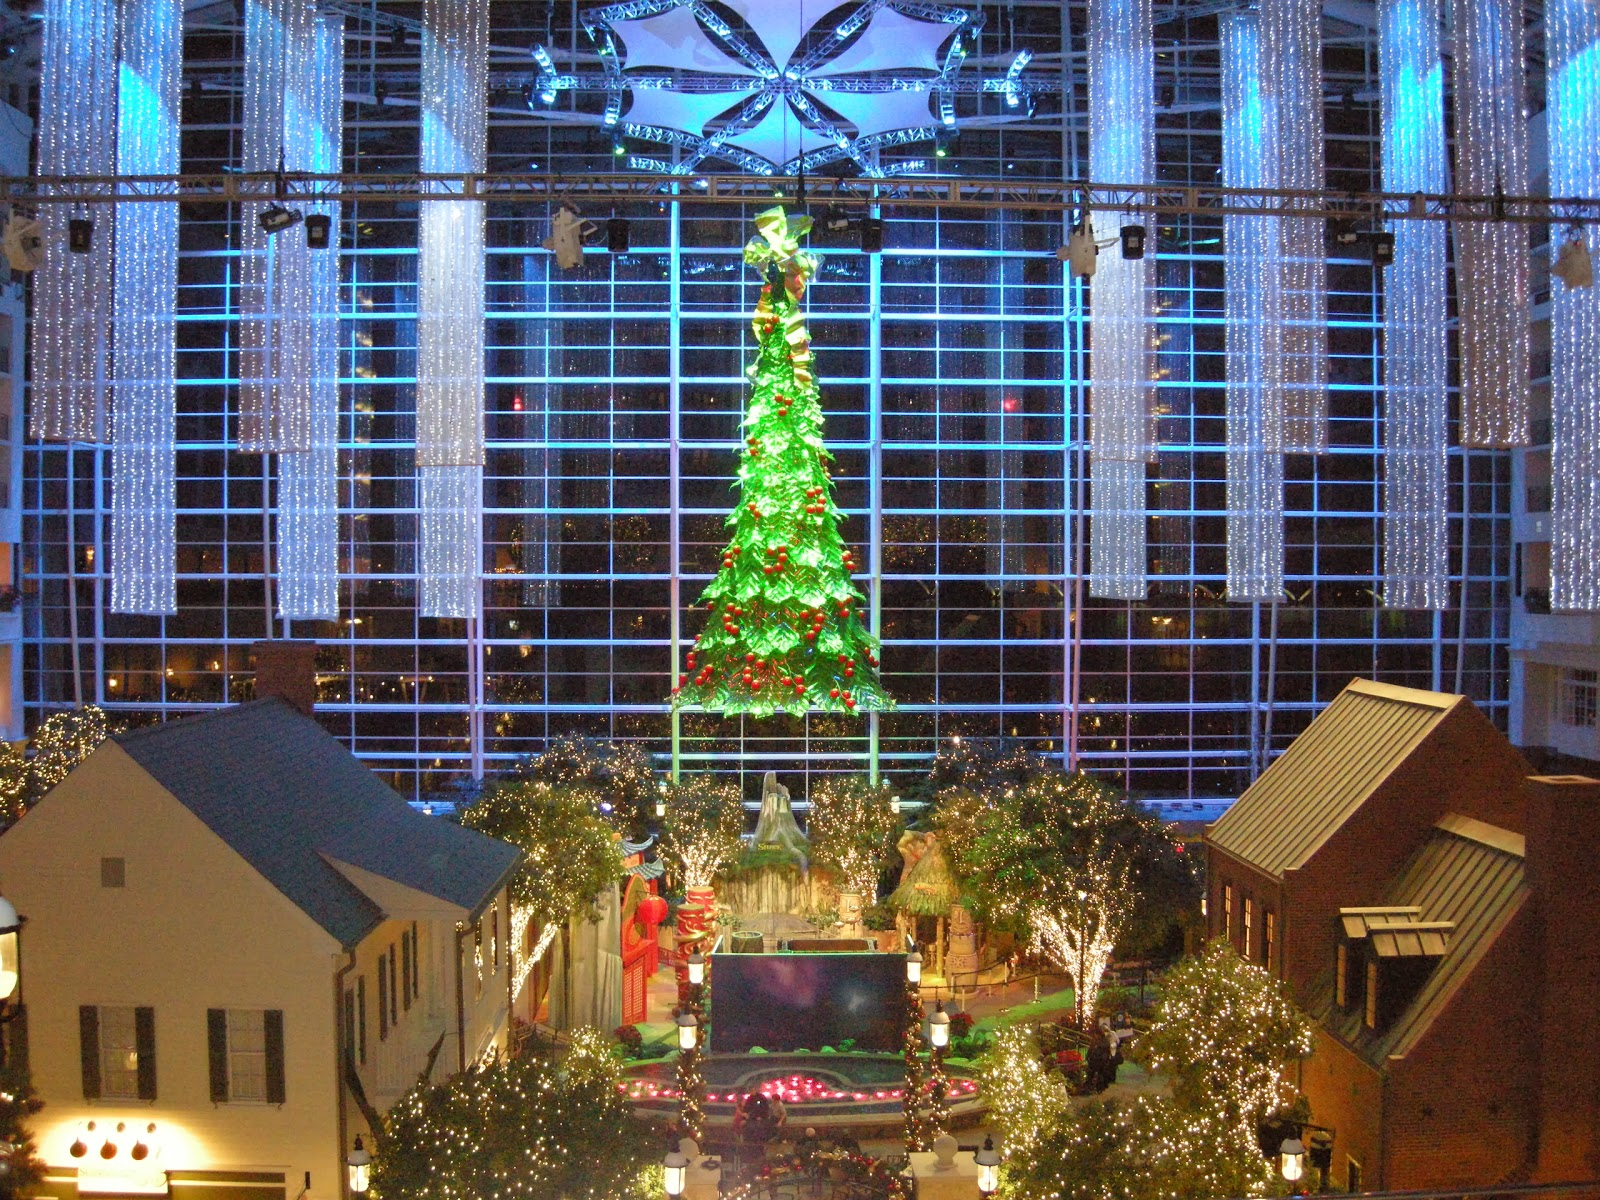 The Event Was At Lord Hotel In National Harbor Maryland This Beautiful Located A Artificial Community Called Which Is Full